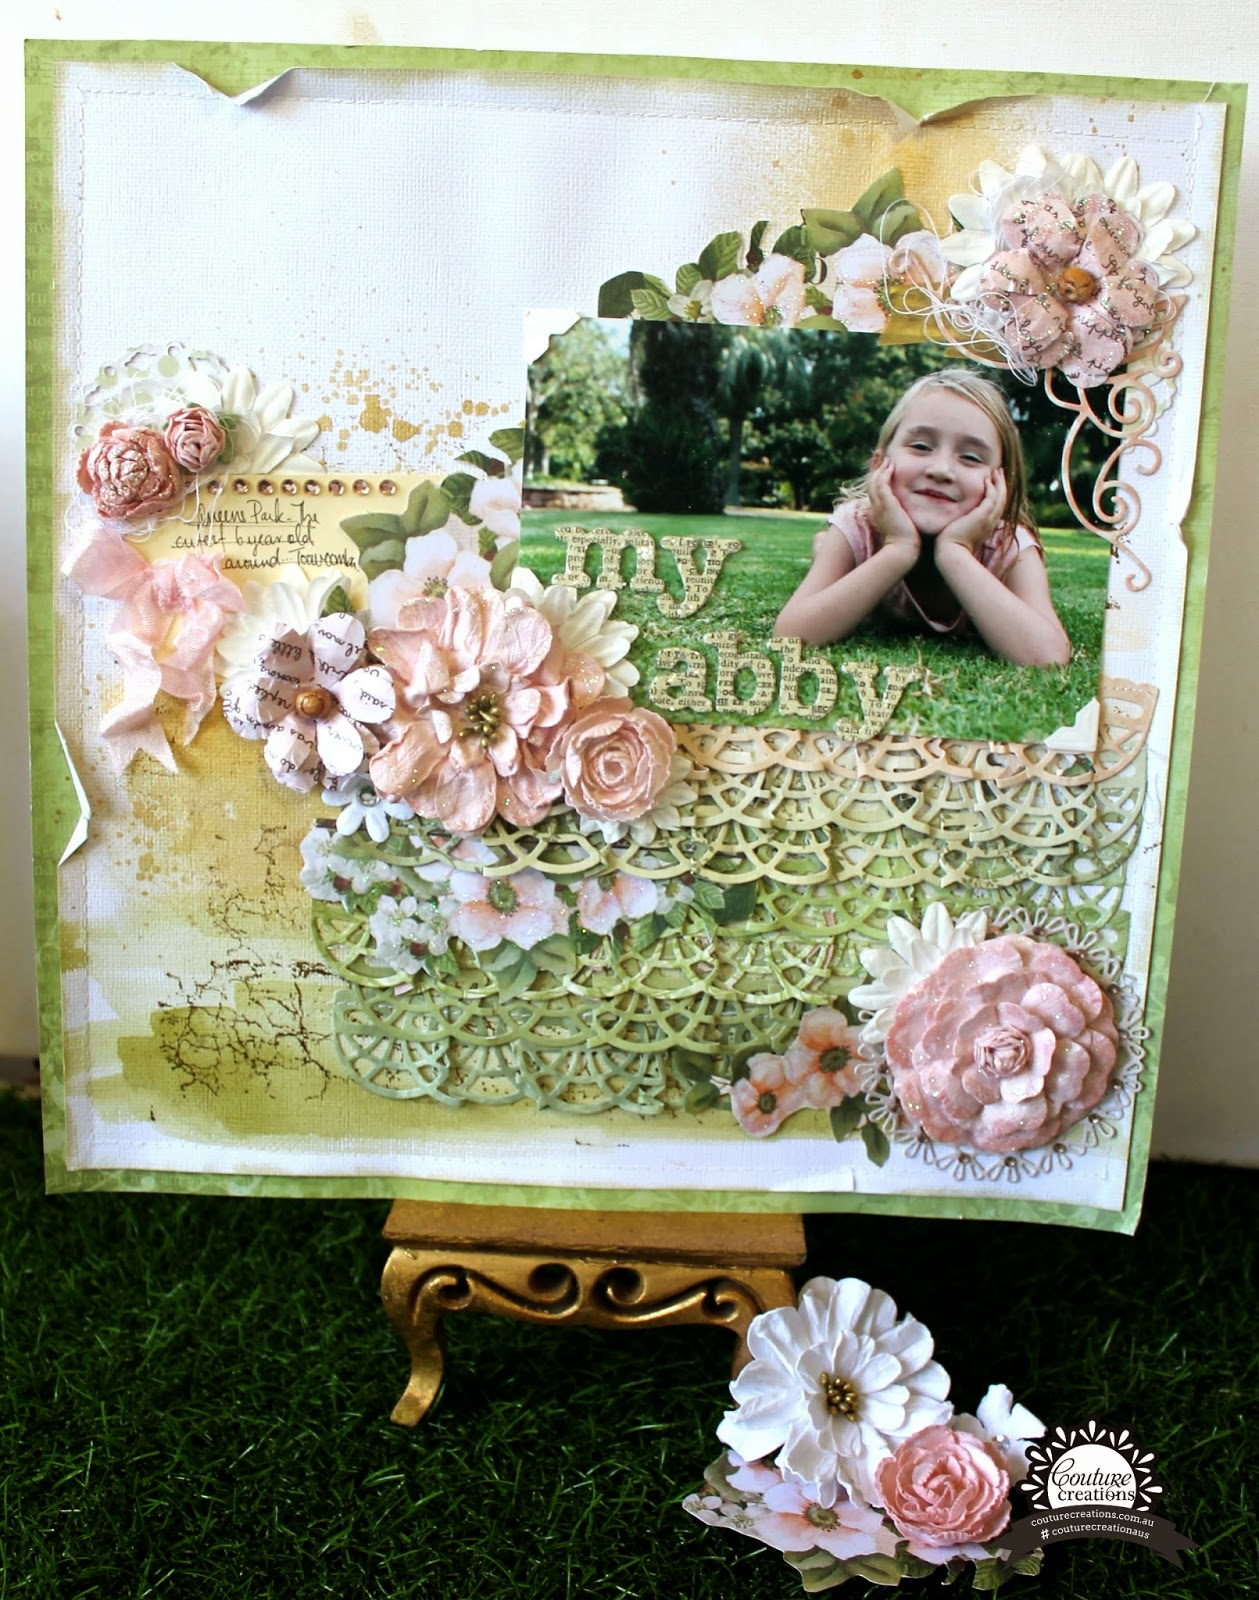 """My Abby"" layout by Bernii Miller for Couture Creations using the Vintage Rose Collection."